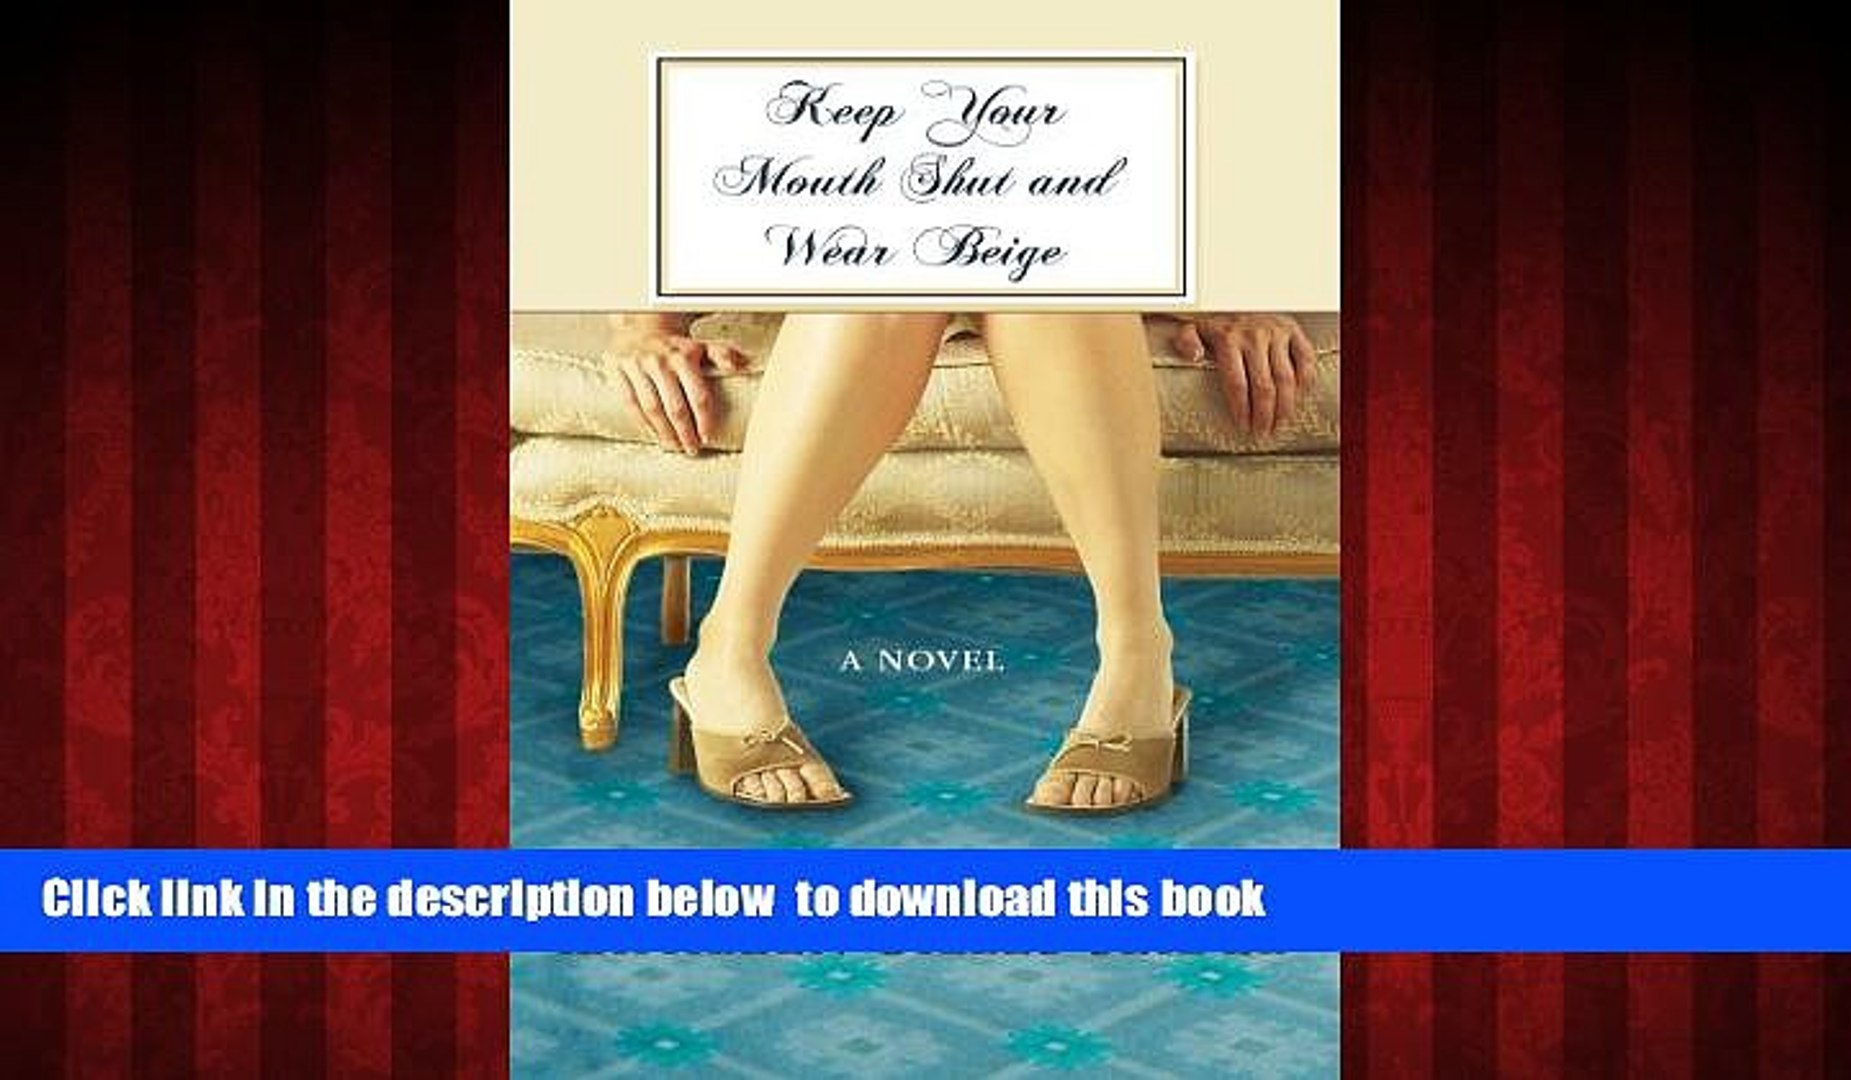 PDF [DOWNLOAD] Keep Your Mouth Shut and Wear Beige (Premier Fiction) [DOWNLOAD] ONLINE